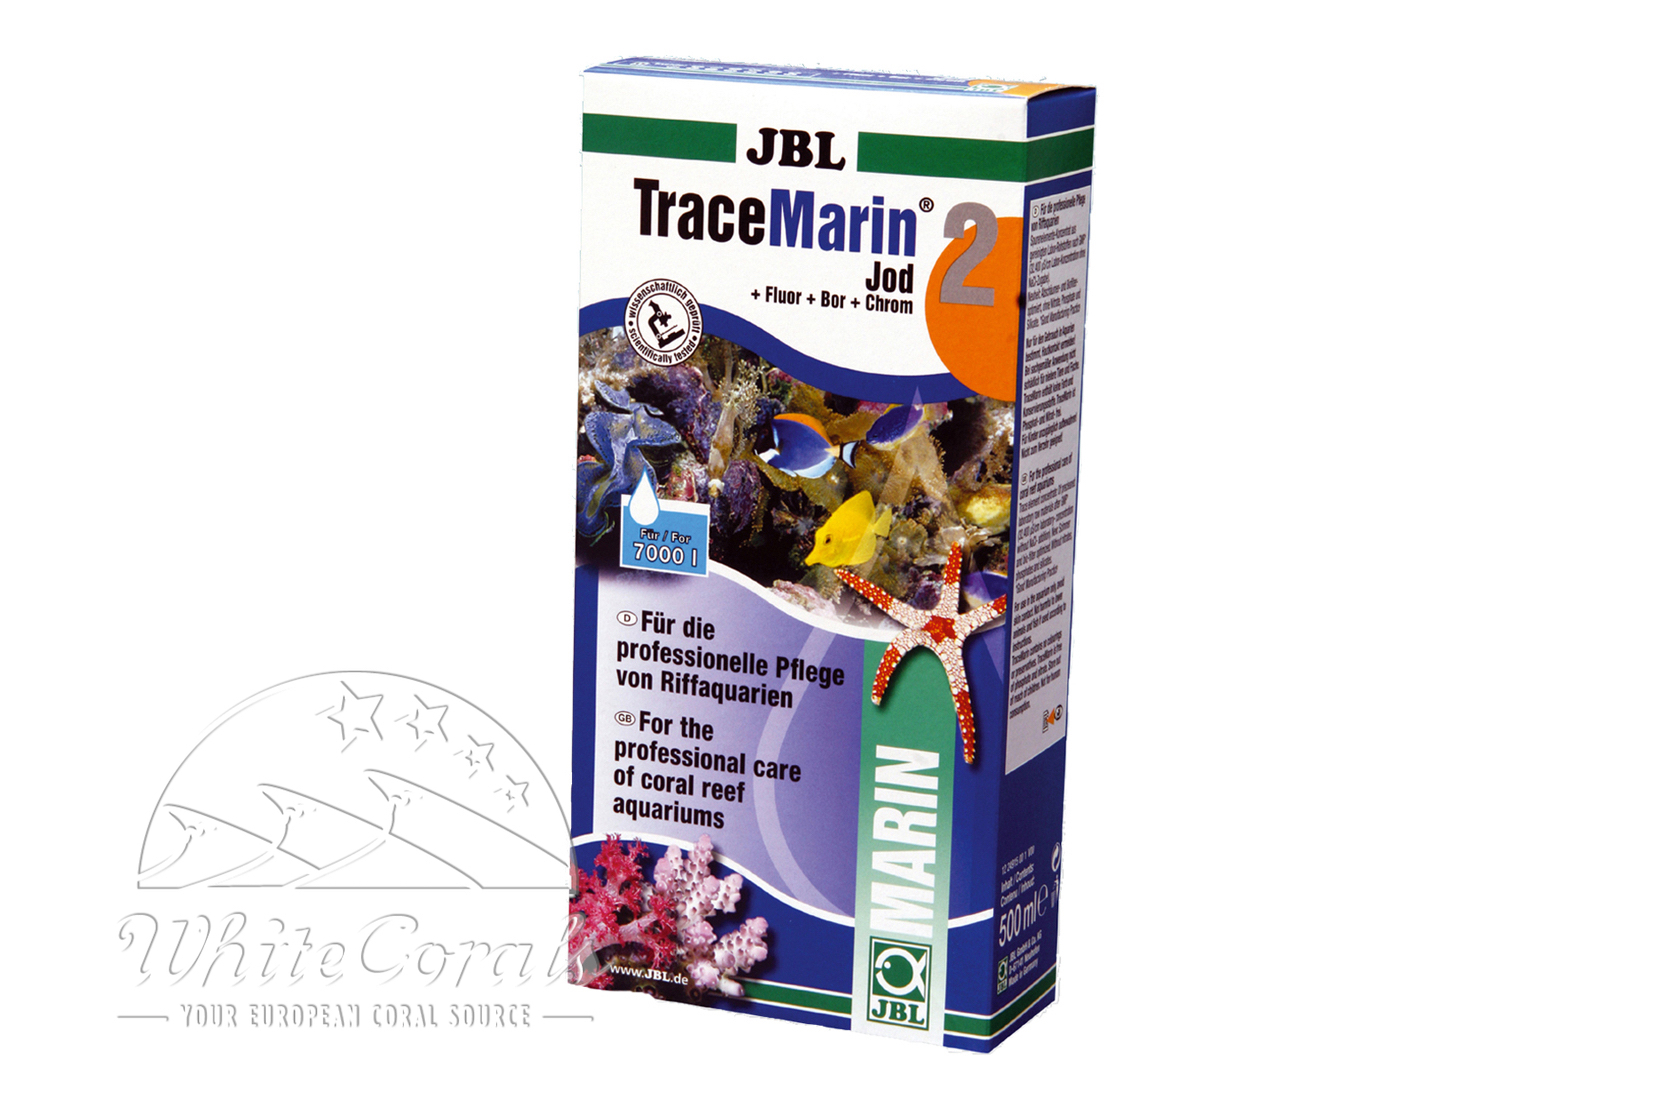 JBL TraceMarin 2 Iodine supplement 500 ml - buy online